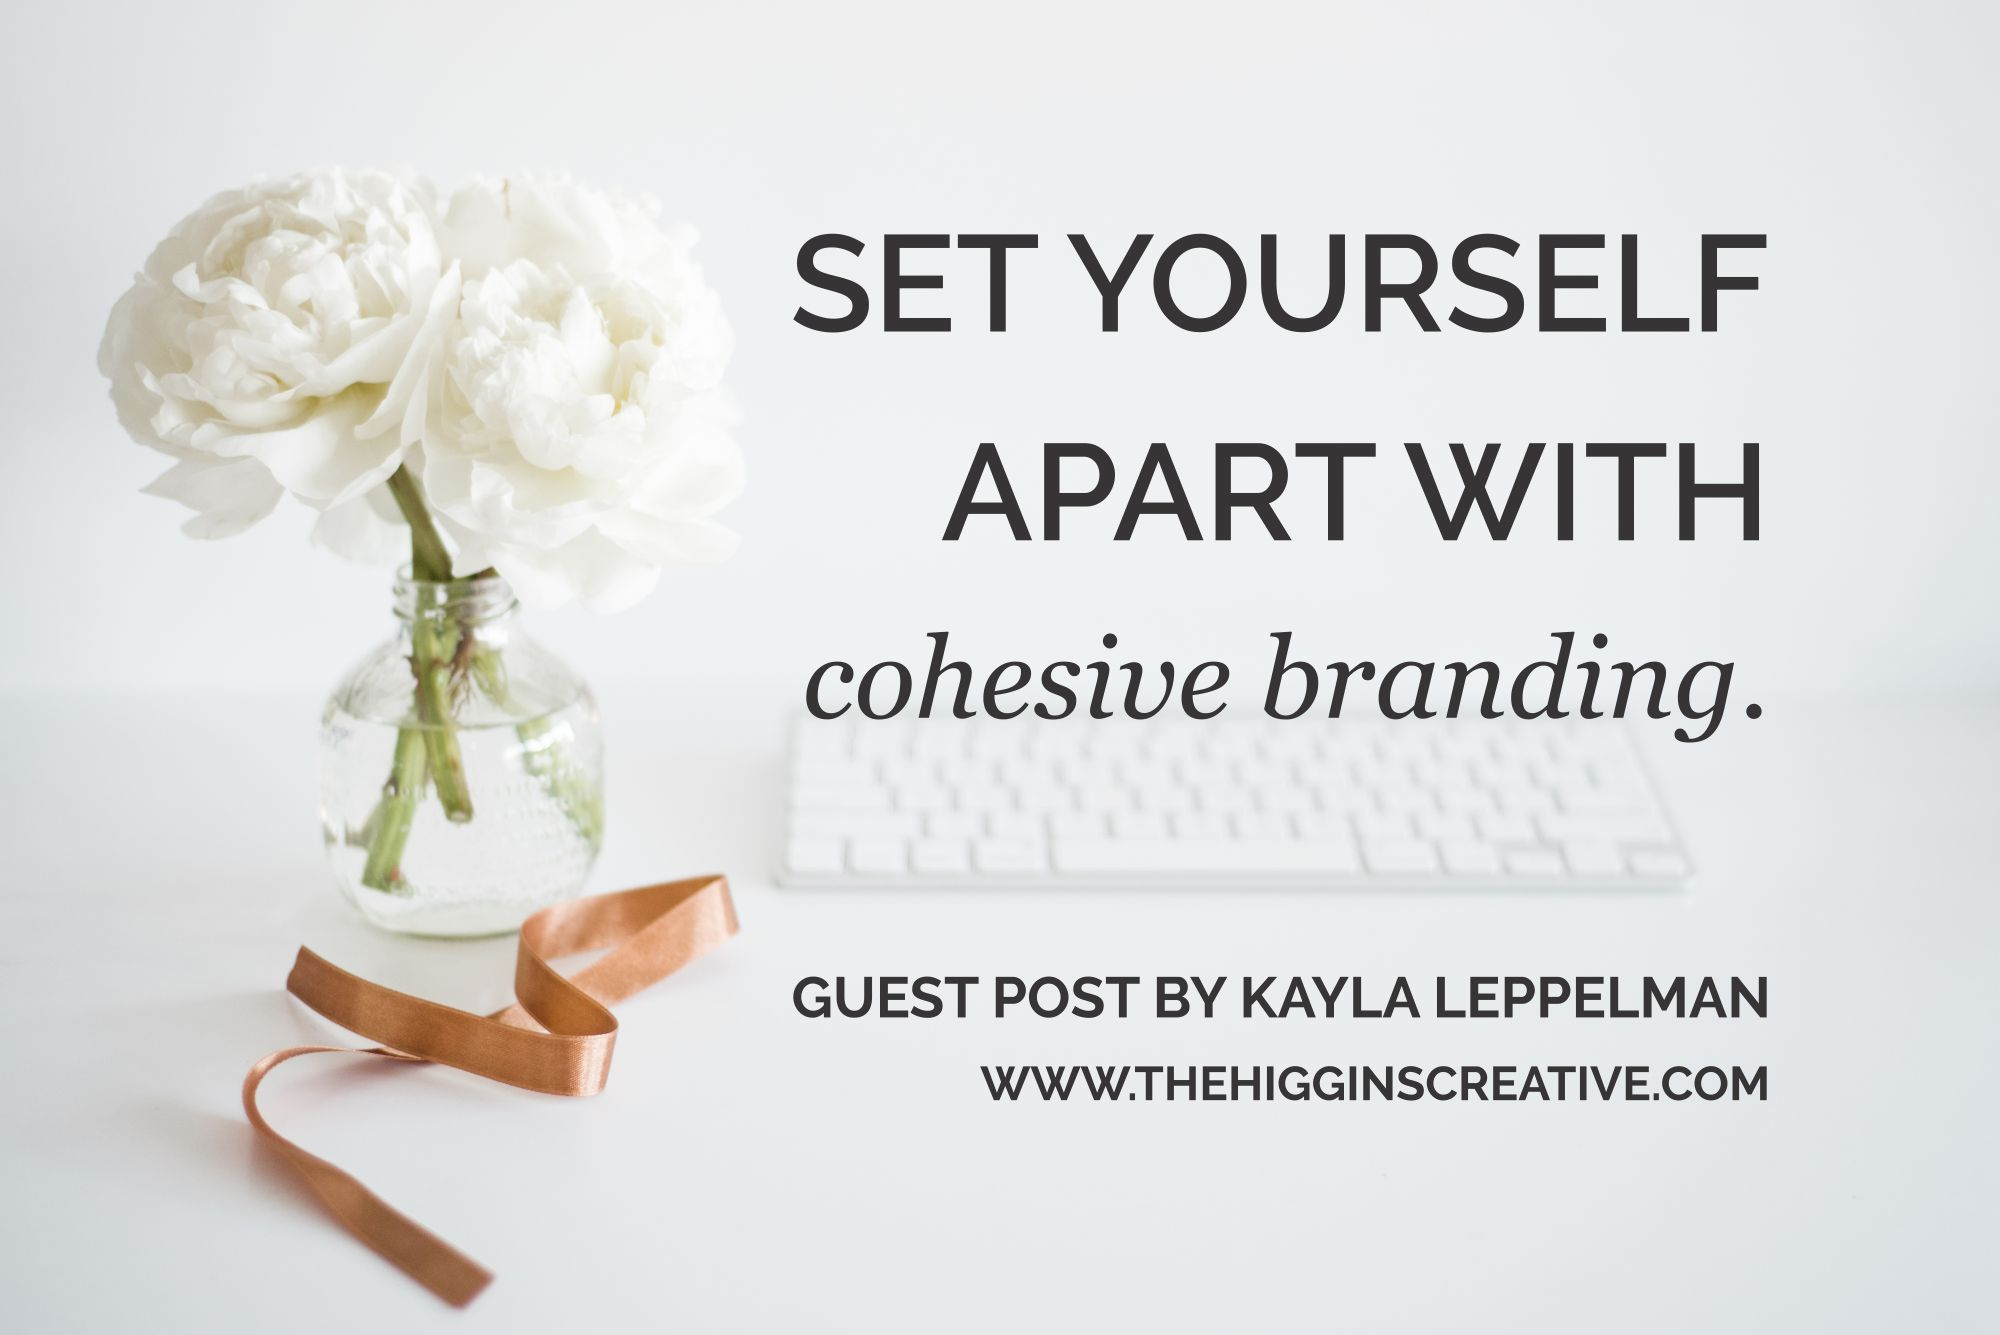 Kayla is sharing her tips on how to set yourself apart with cohesive branding. she has over 7 years experience in the wedding industry and has learnt some valuable branding tips that you can benefit from. See her tips by clicking this post.